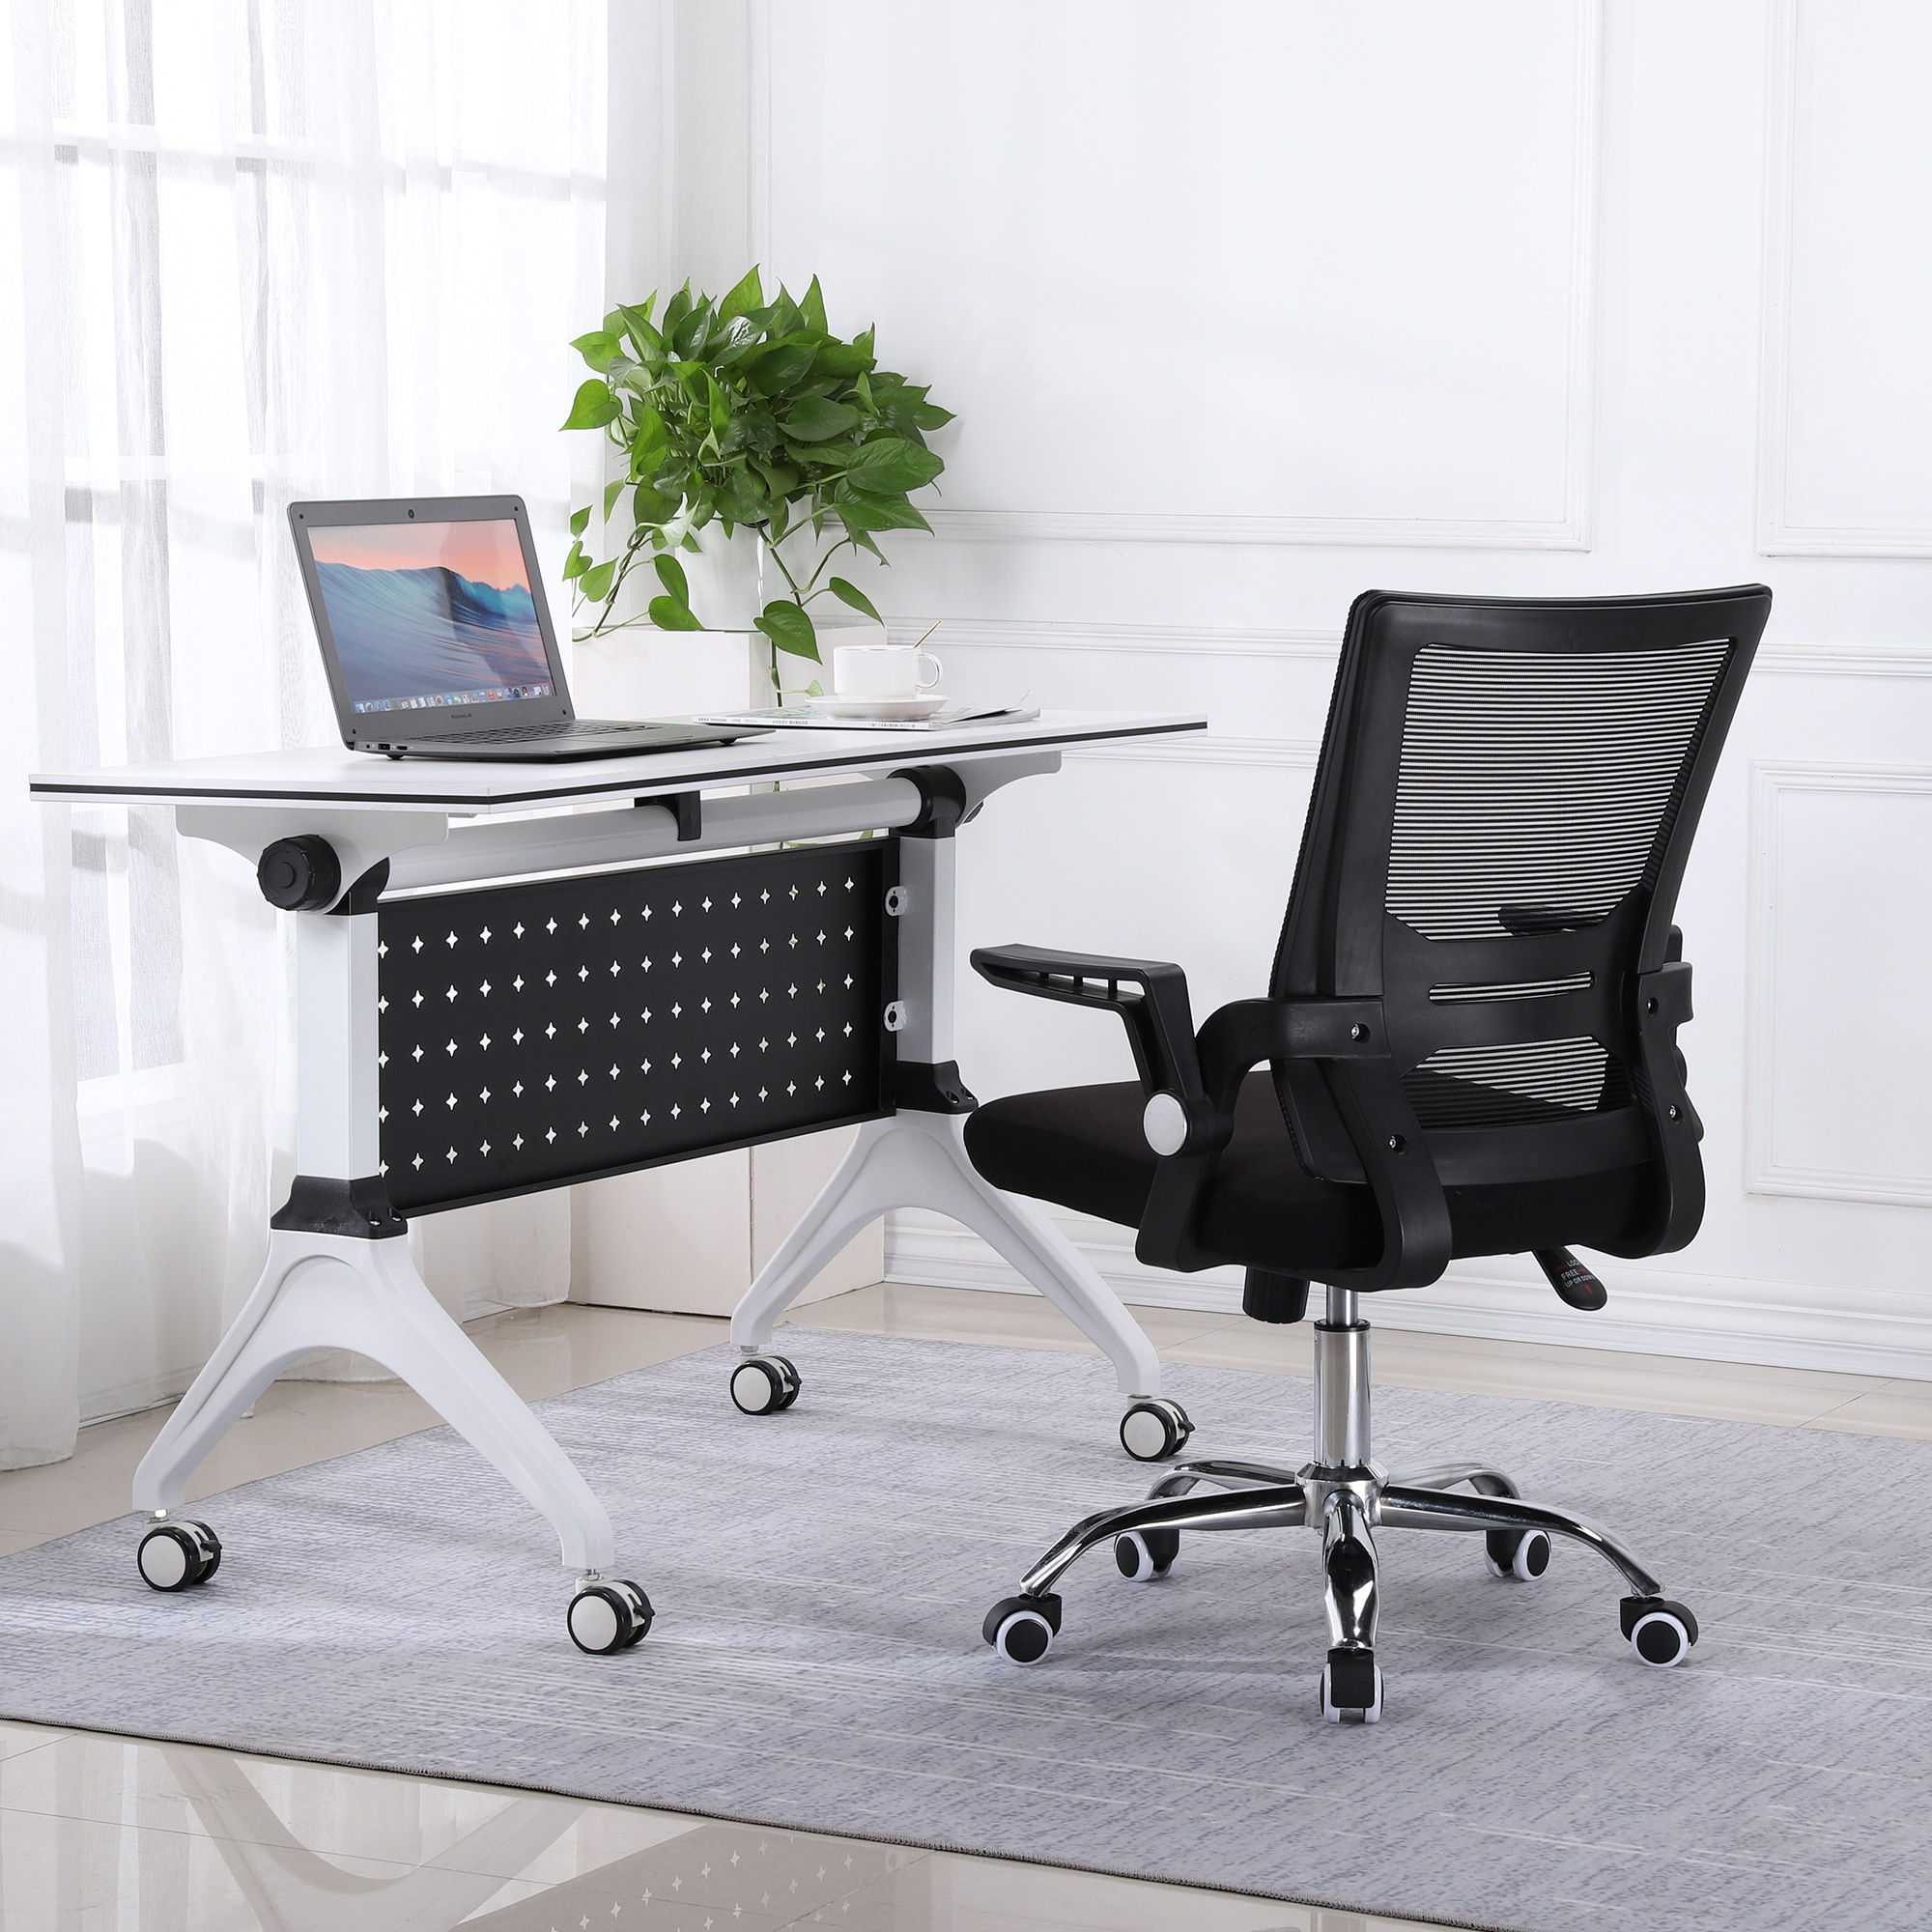 Hee868e20c88a4215aec579c8120ec978V - Sigtua Swiveling Desk Chair Breathable Height-adjustable PC Chair Ergonomic Executive Black Computer Office Chair